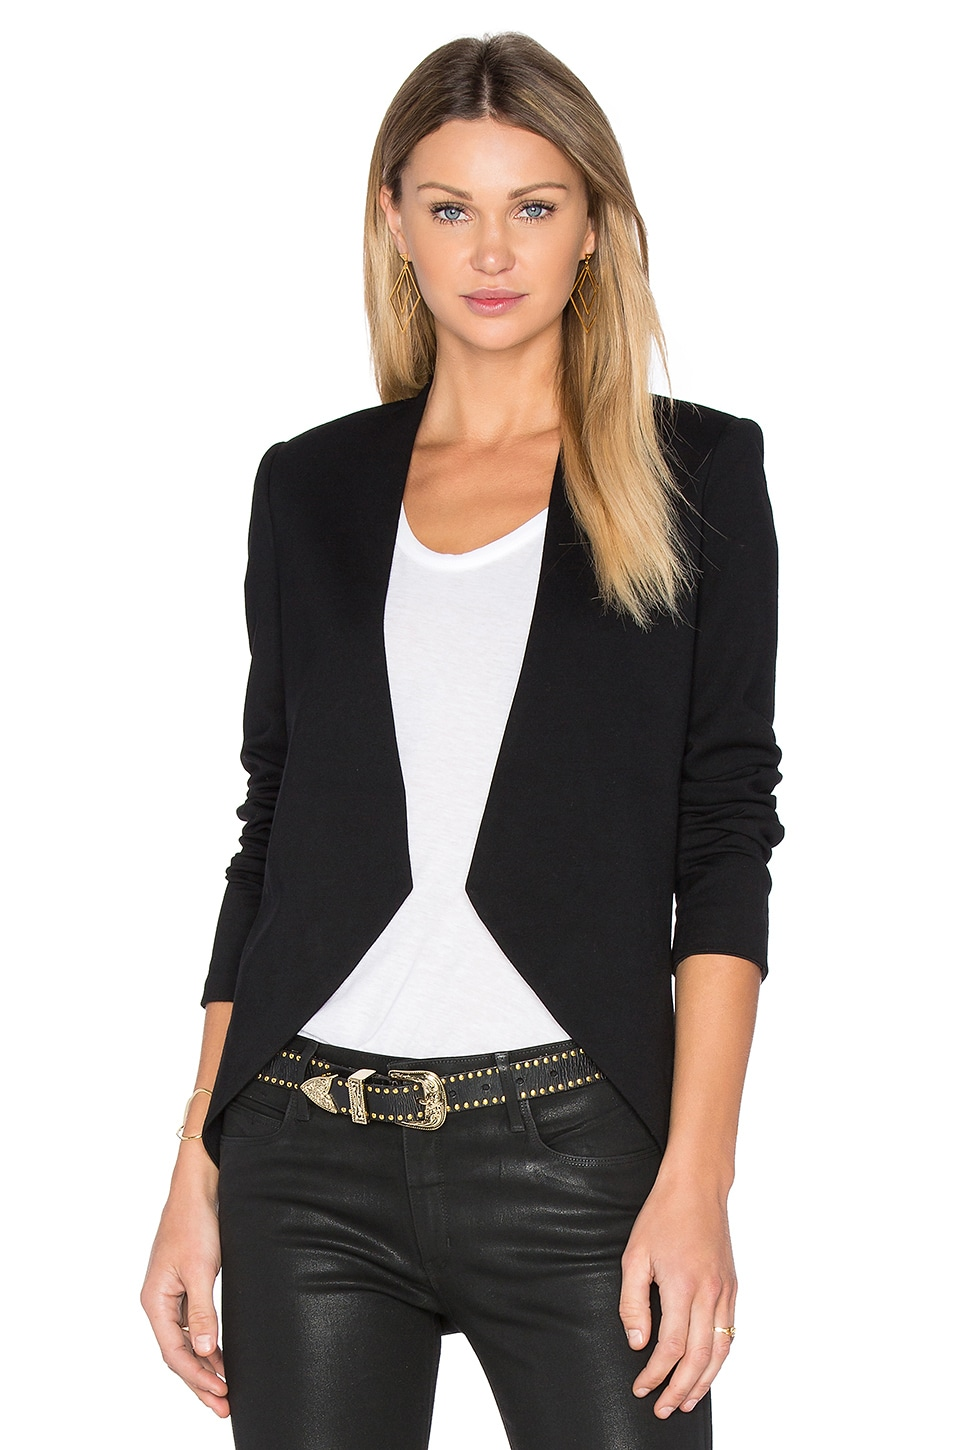 BLAQUE LABEL Sculpted Jacket in Black